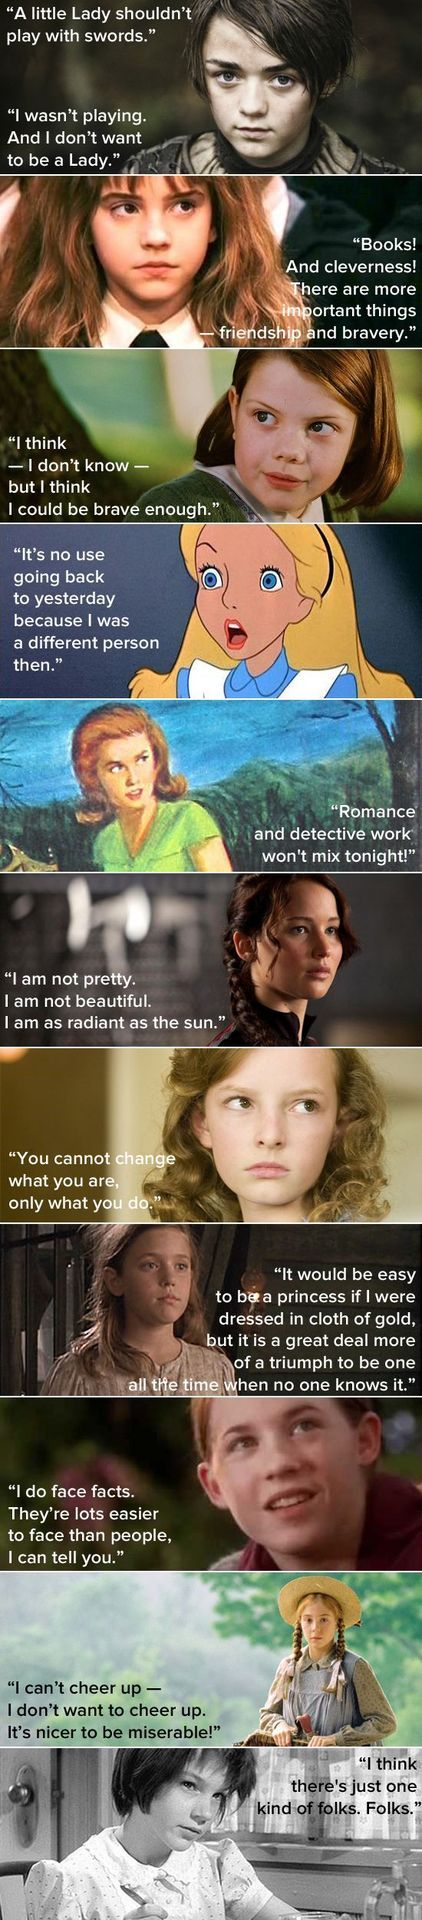 Young literary heroines have a lot to teach us.